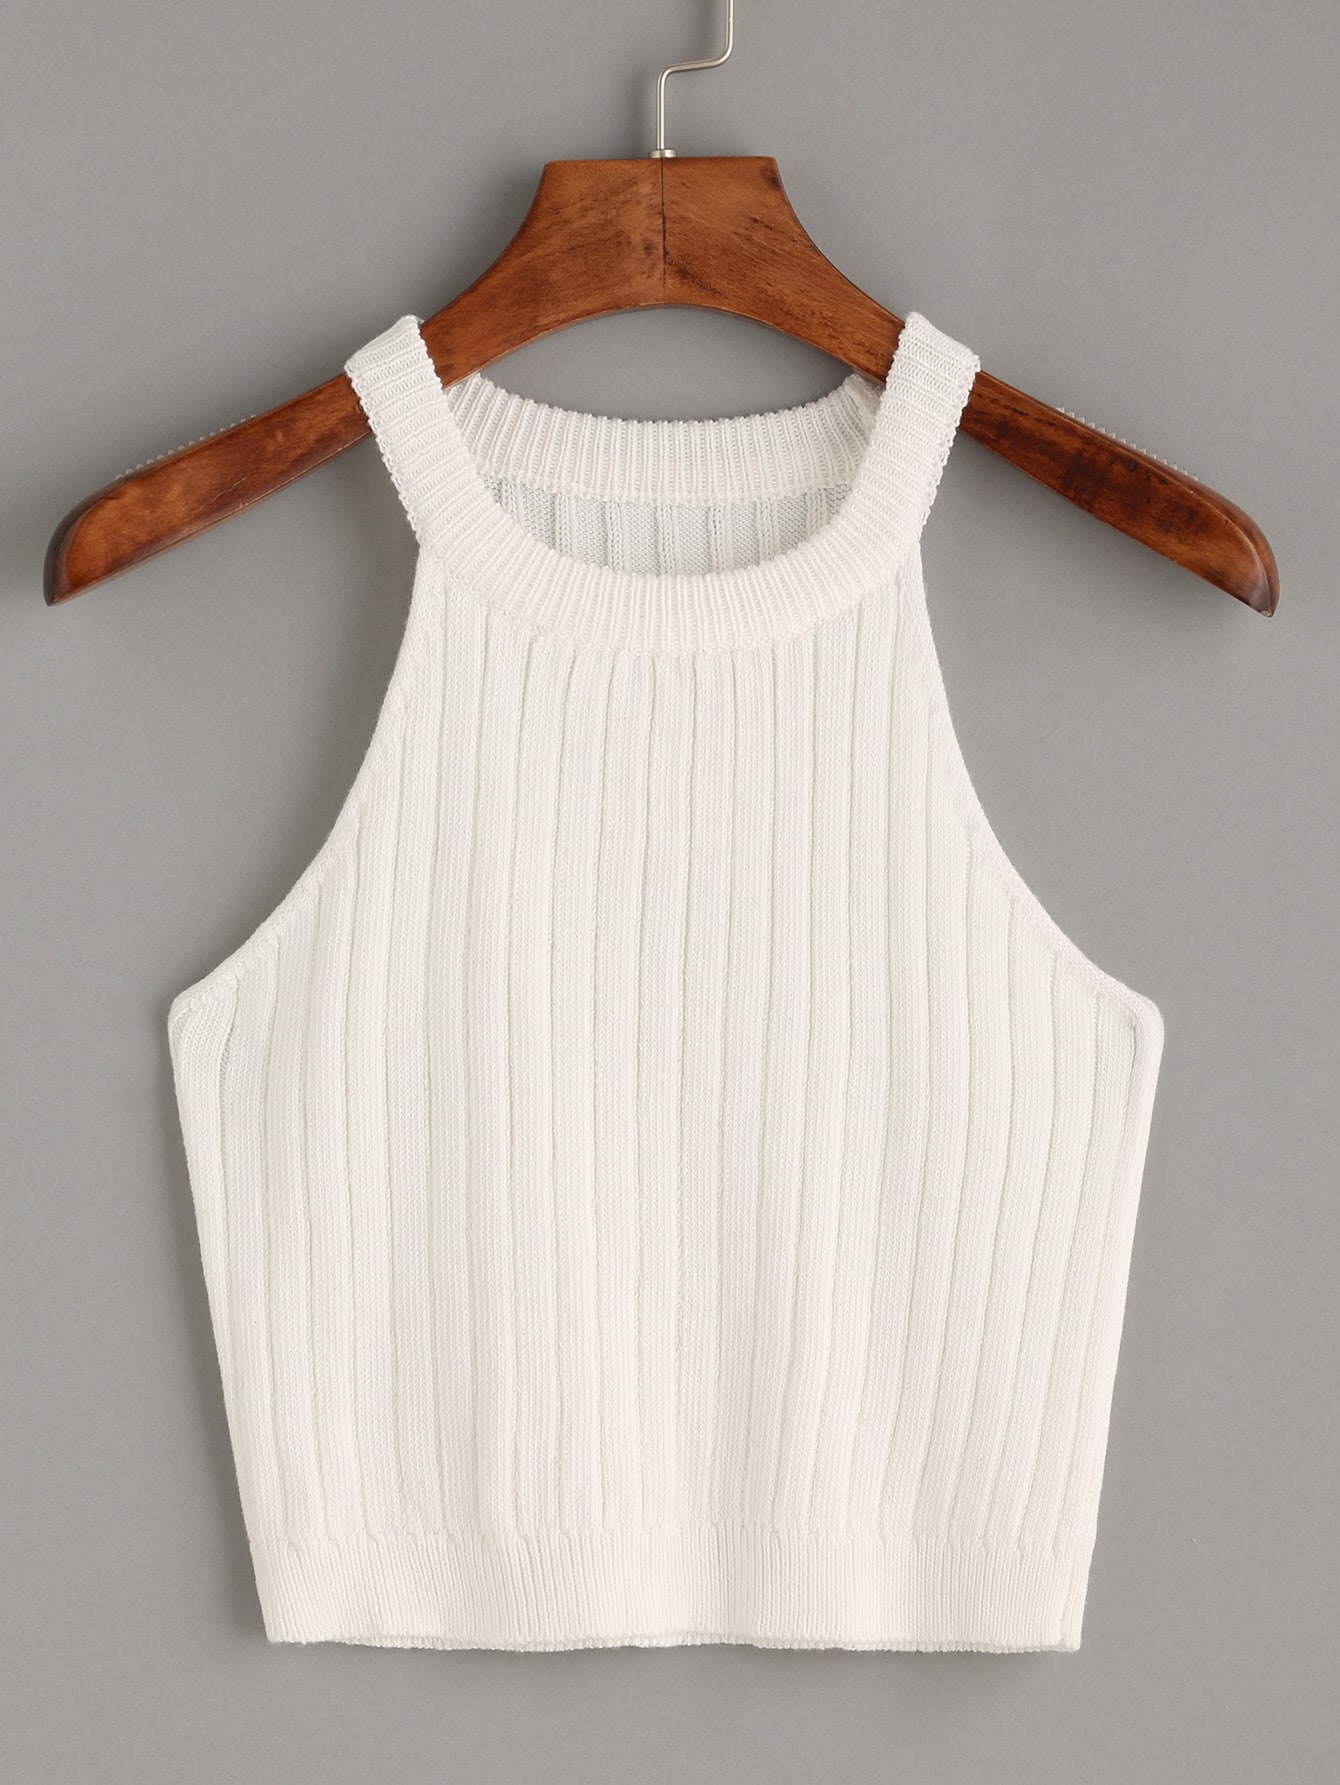 Knitted Rib Tank Top vest160623529